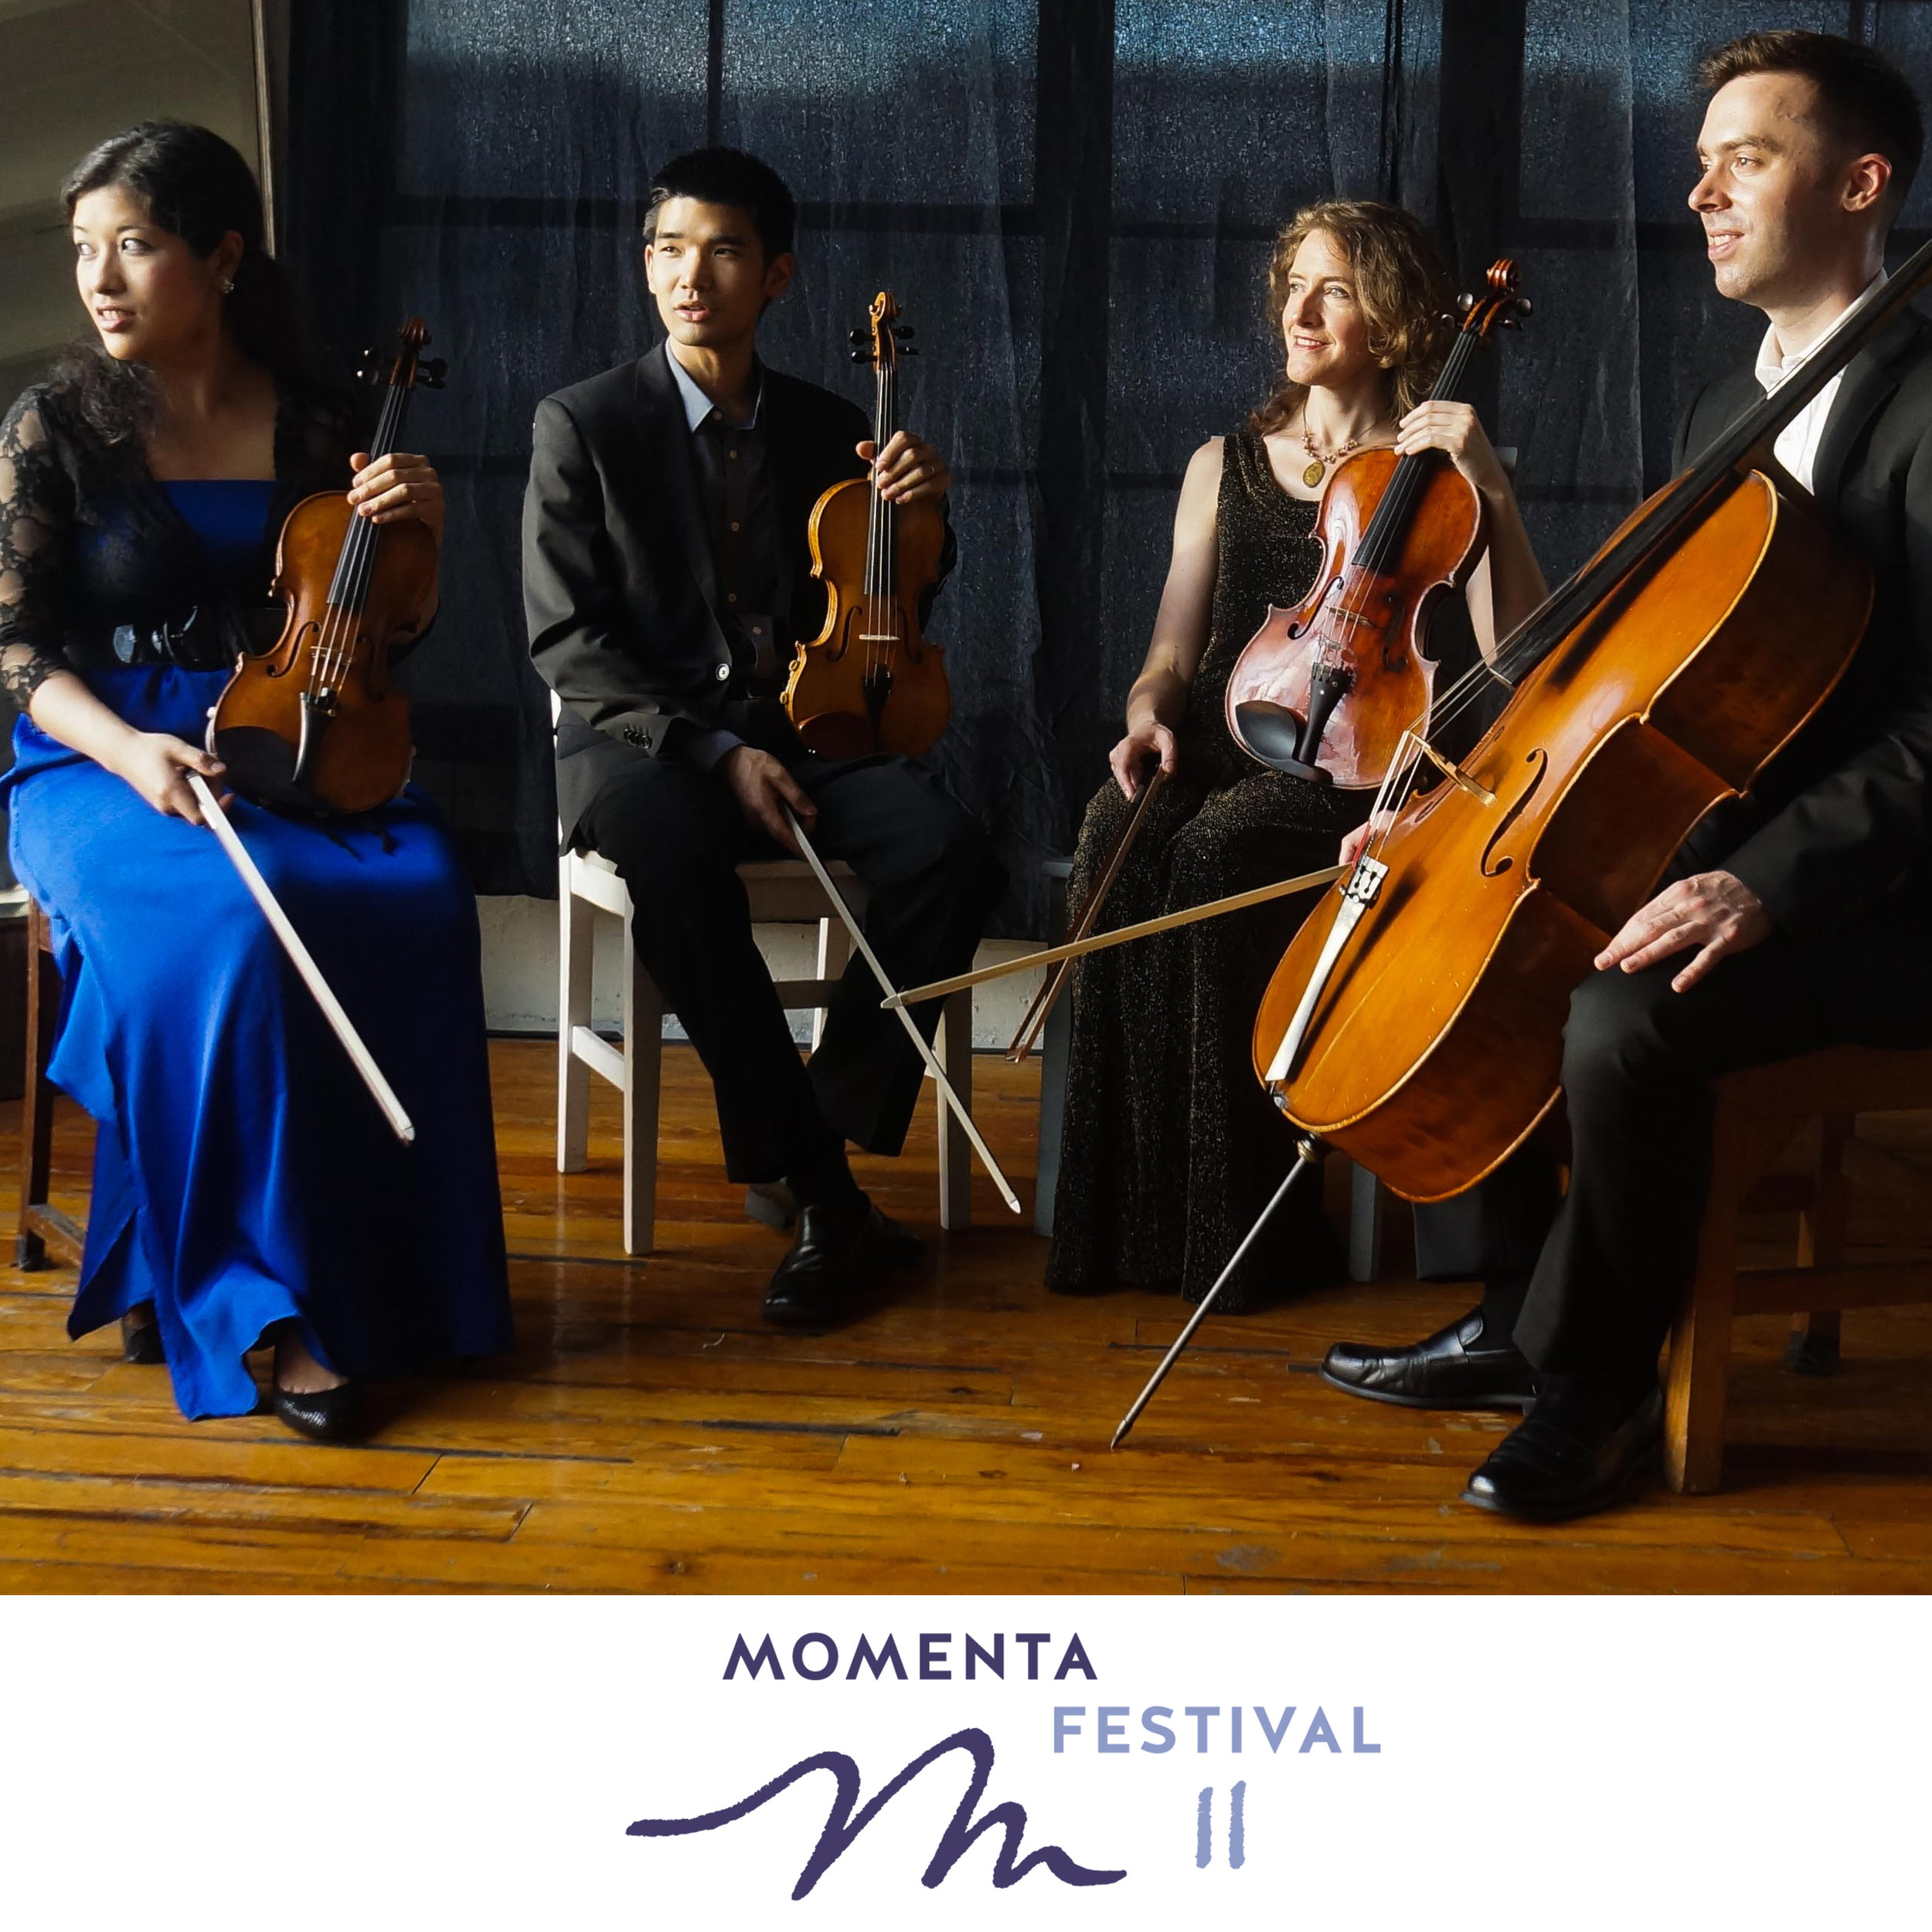 Momenta Quartet and the Momenta Festival